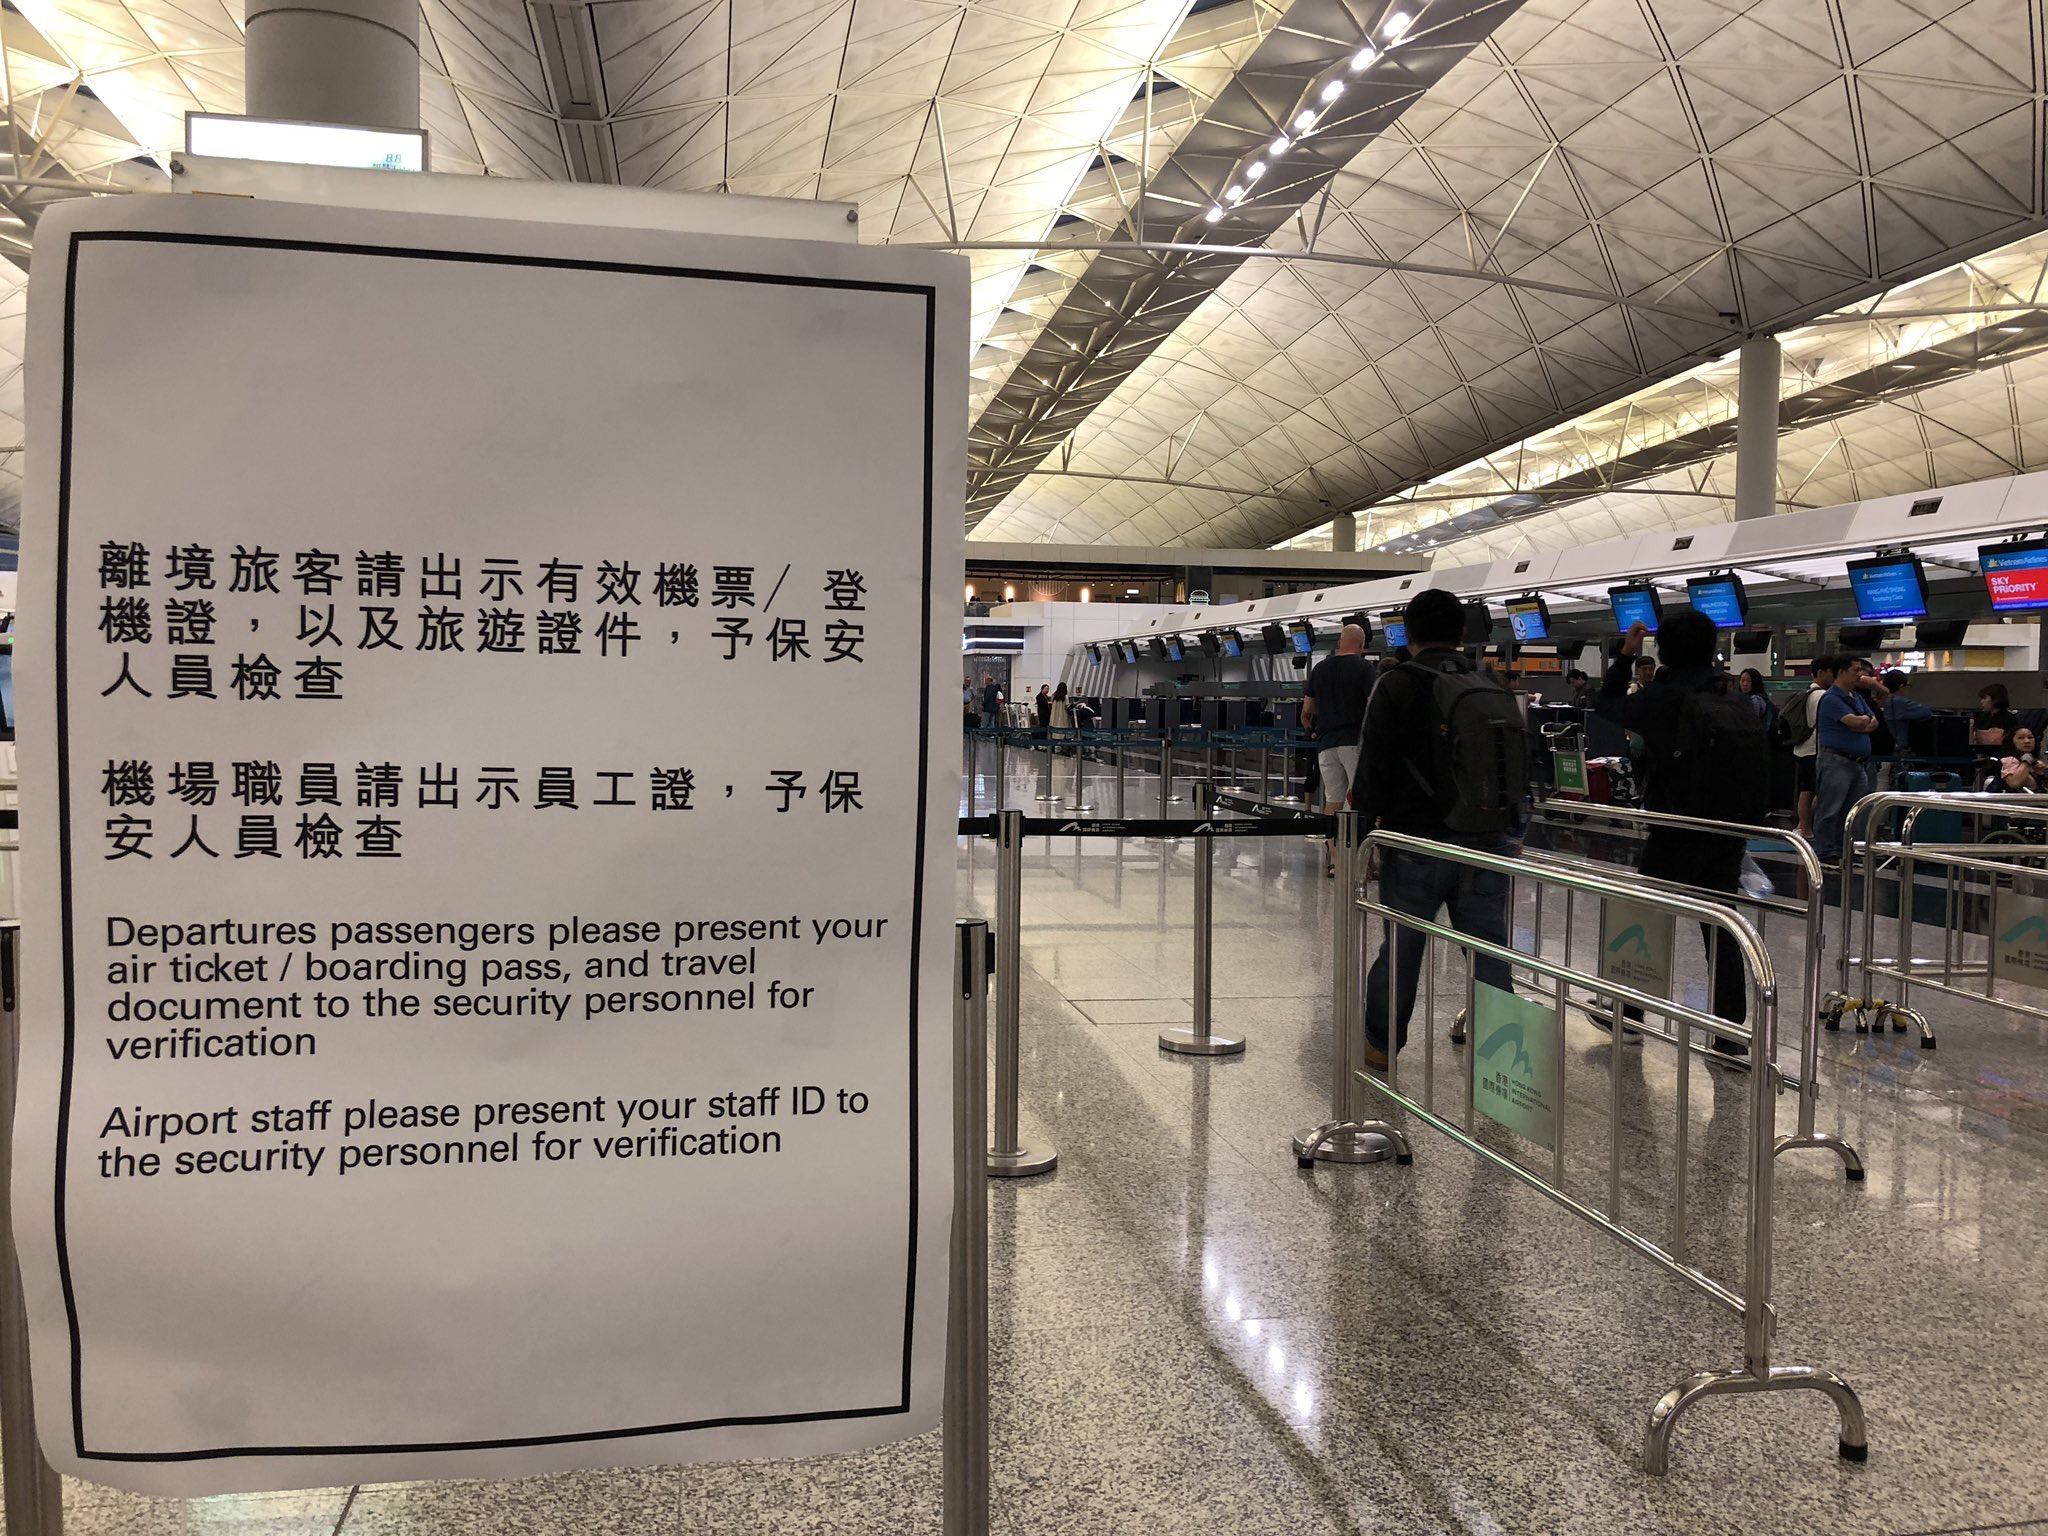 Stringent new security checks have been introduced at HKIA as protests continue at the airport.